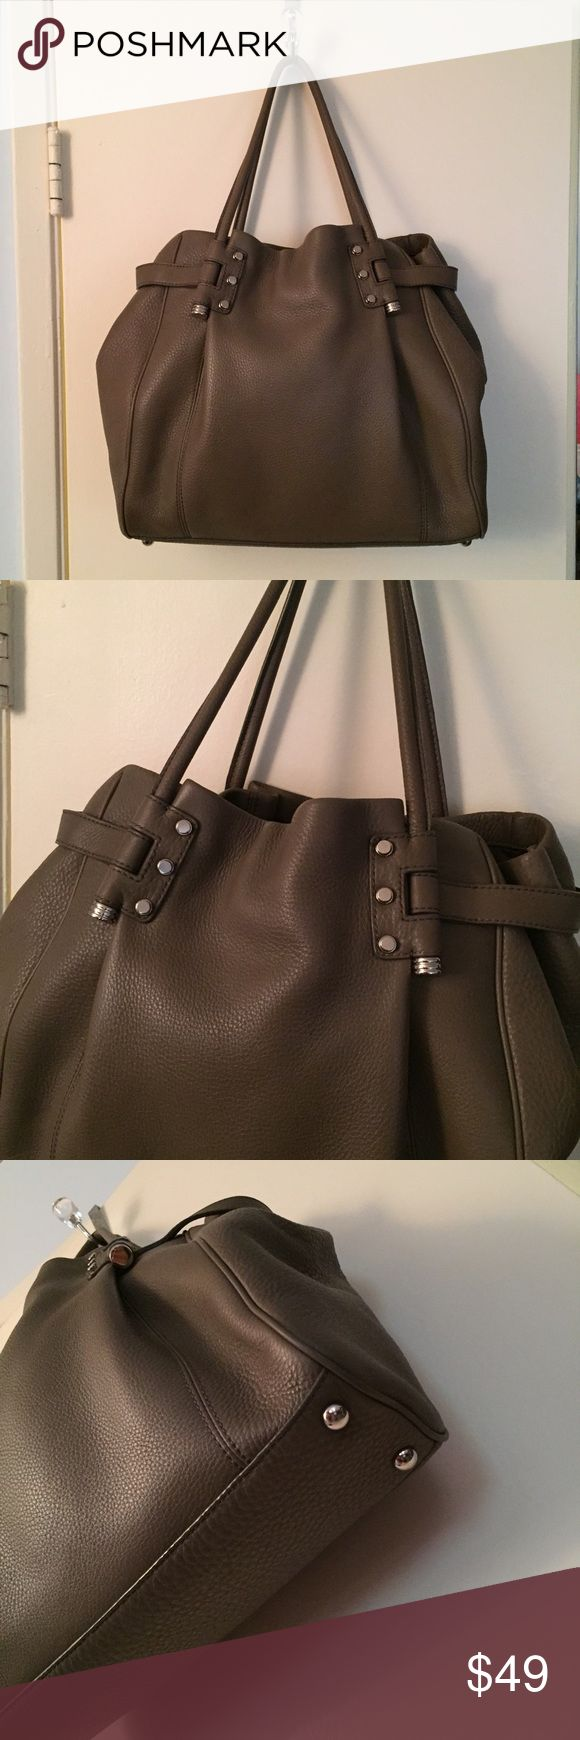 Banana Republic purse Pebbled leather tote bag by Banana Republic. Only used a couple times, nearly new condition. Banana Republic Bags Totes